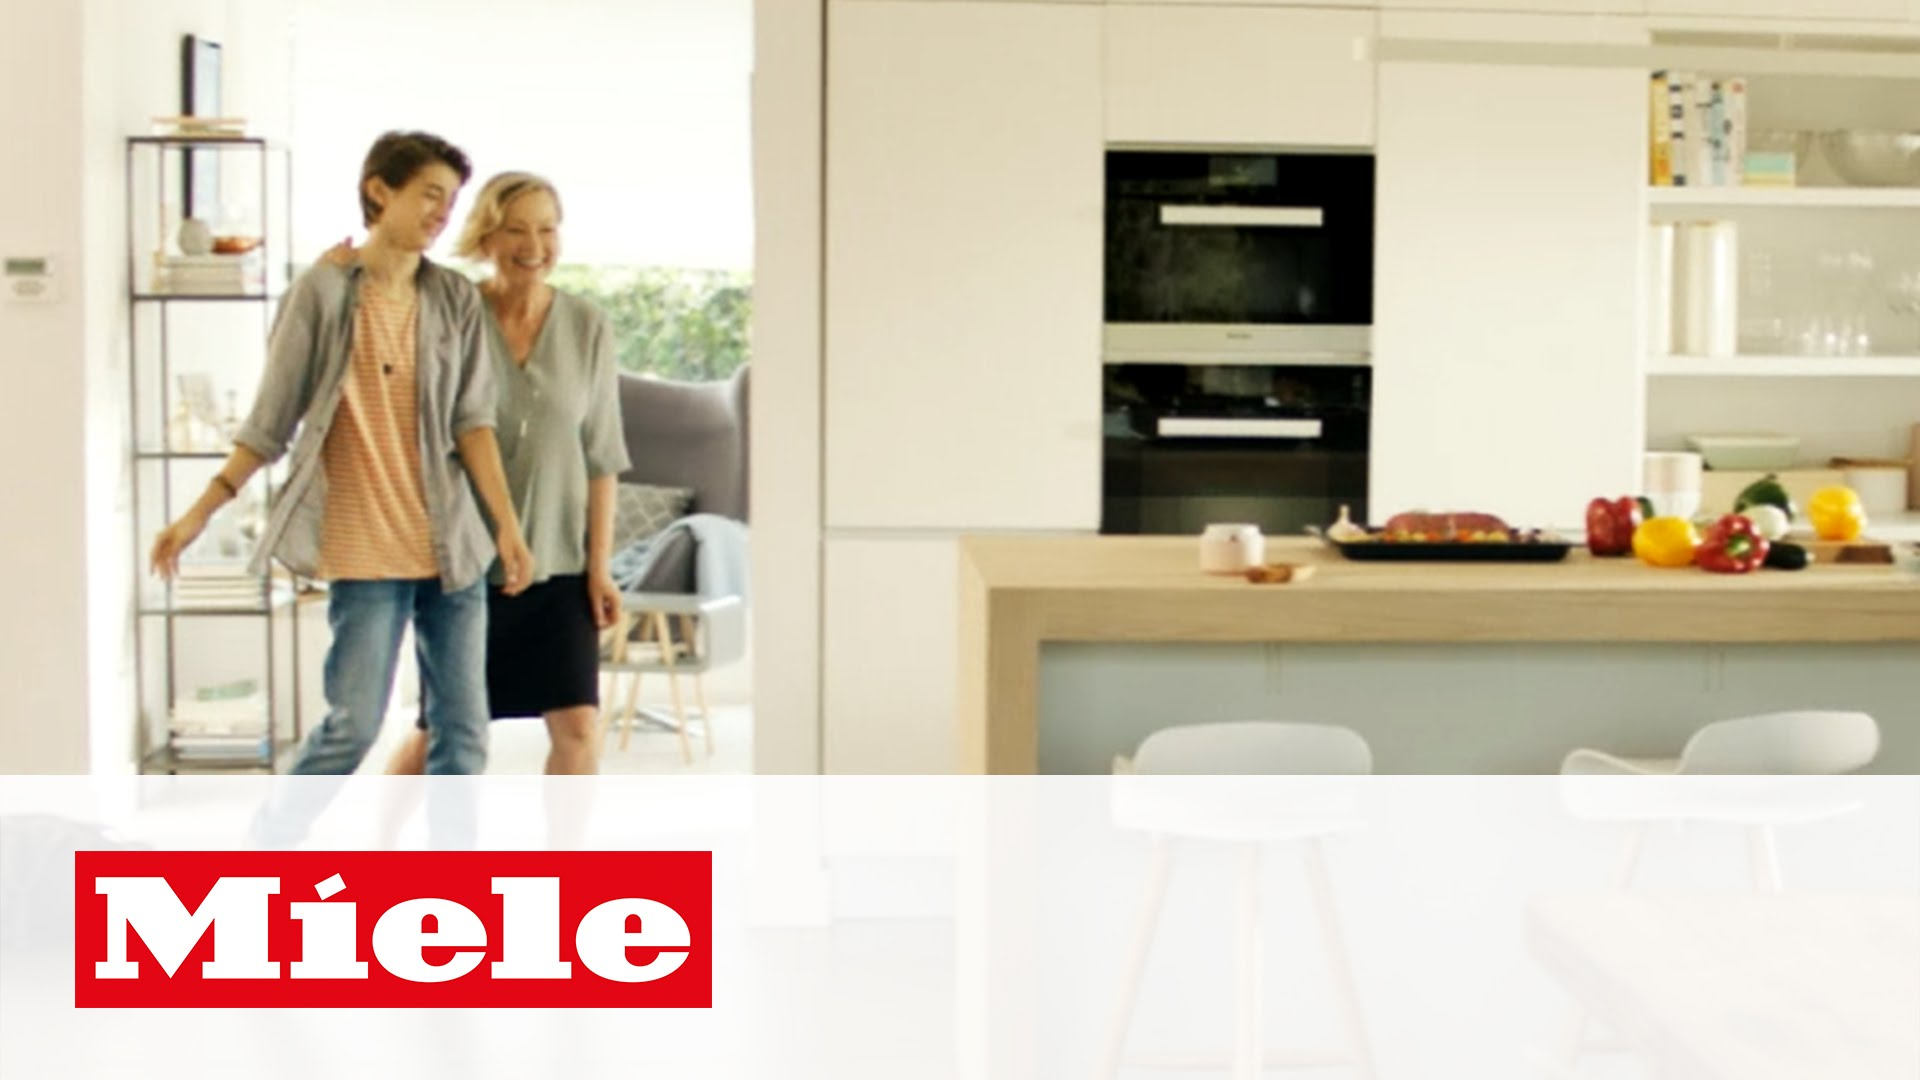 Miele M-Touch: Every Generation Has Its Own Touch